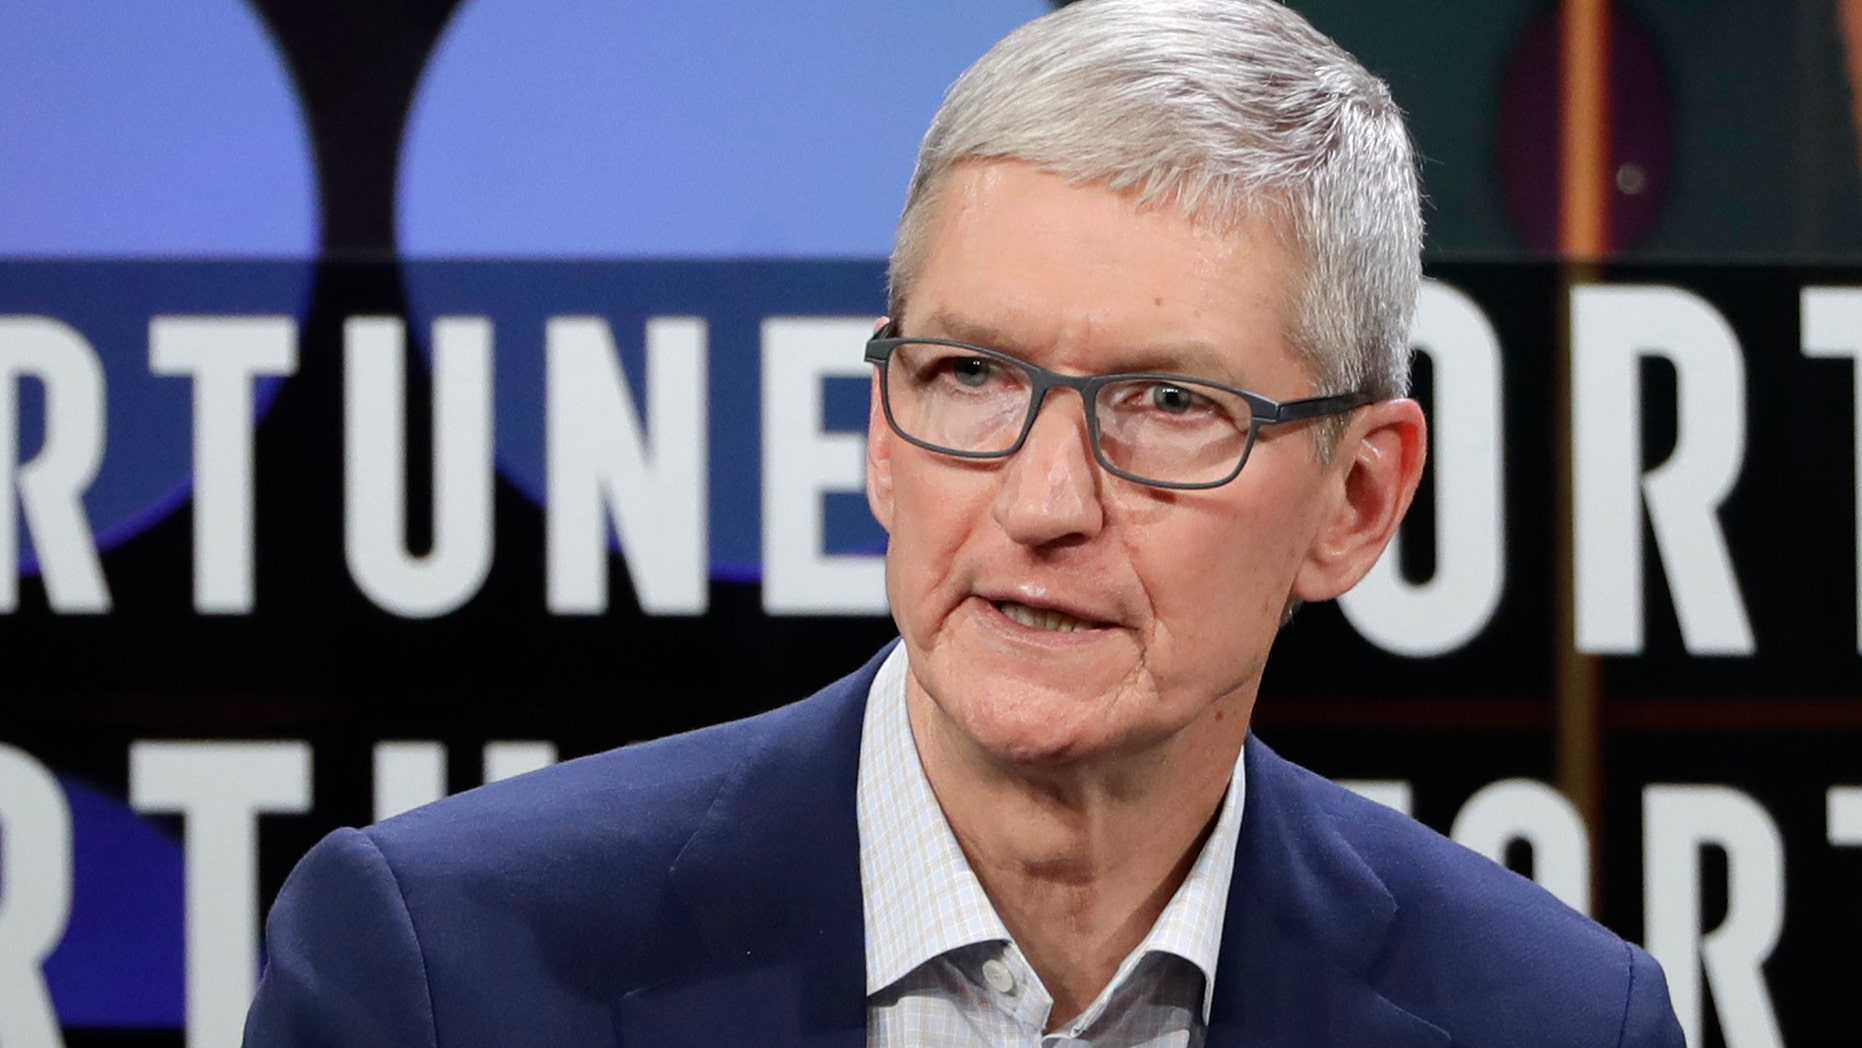 Apple CEO Tim Cook speaks during The Fortune CEO Initiative 2018 Annual Meeting, Monday, June 25, 2018, in San Francisco. (AP Photo/Marcio Jose Sanchez)